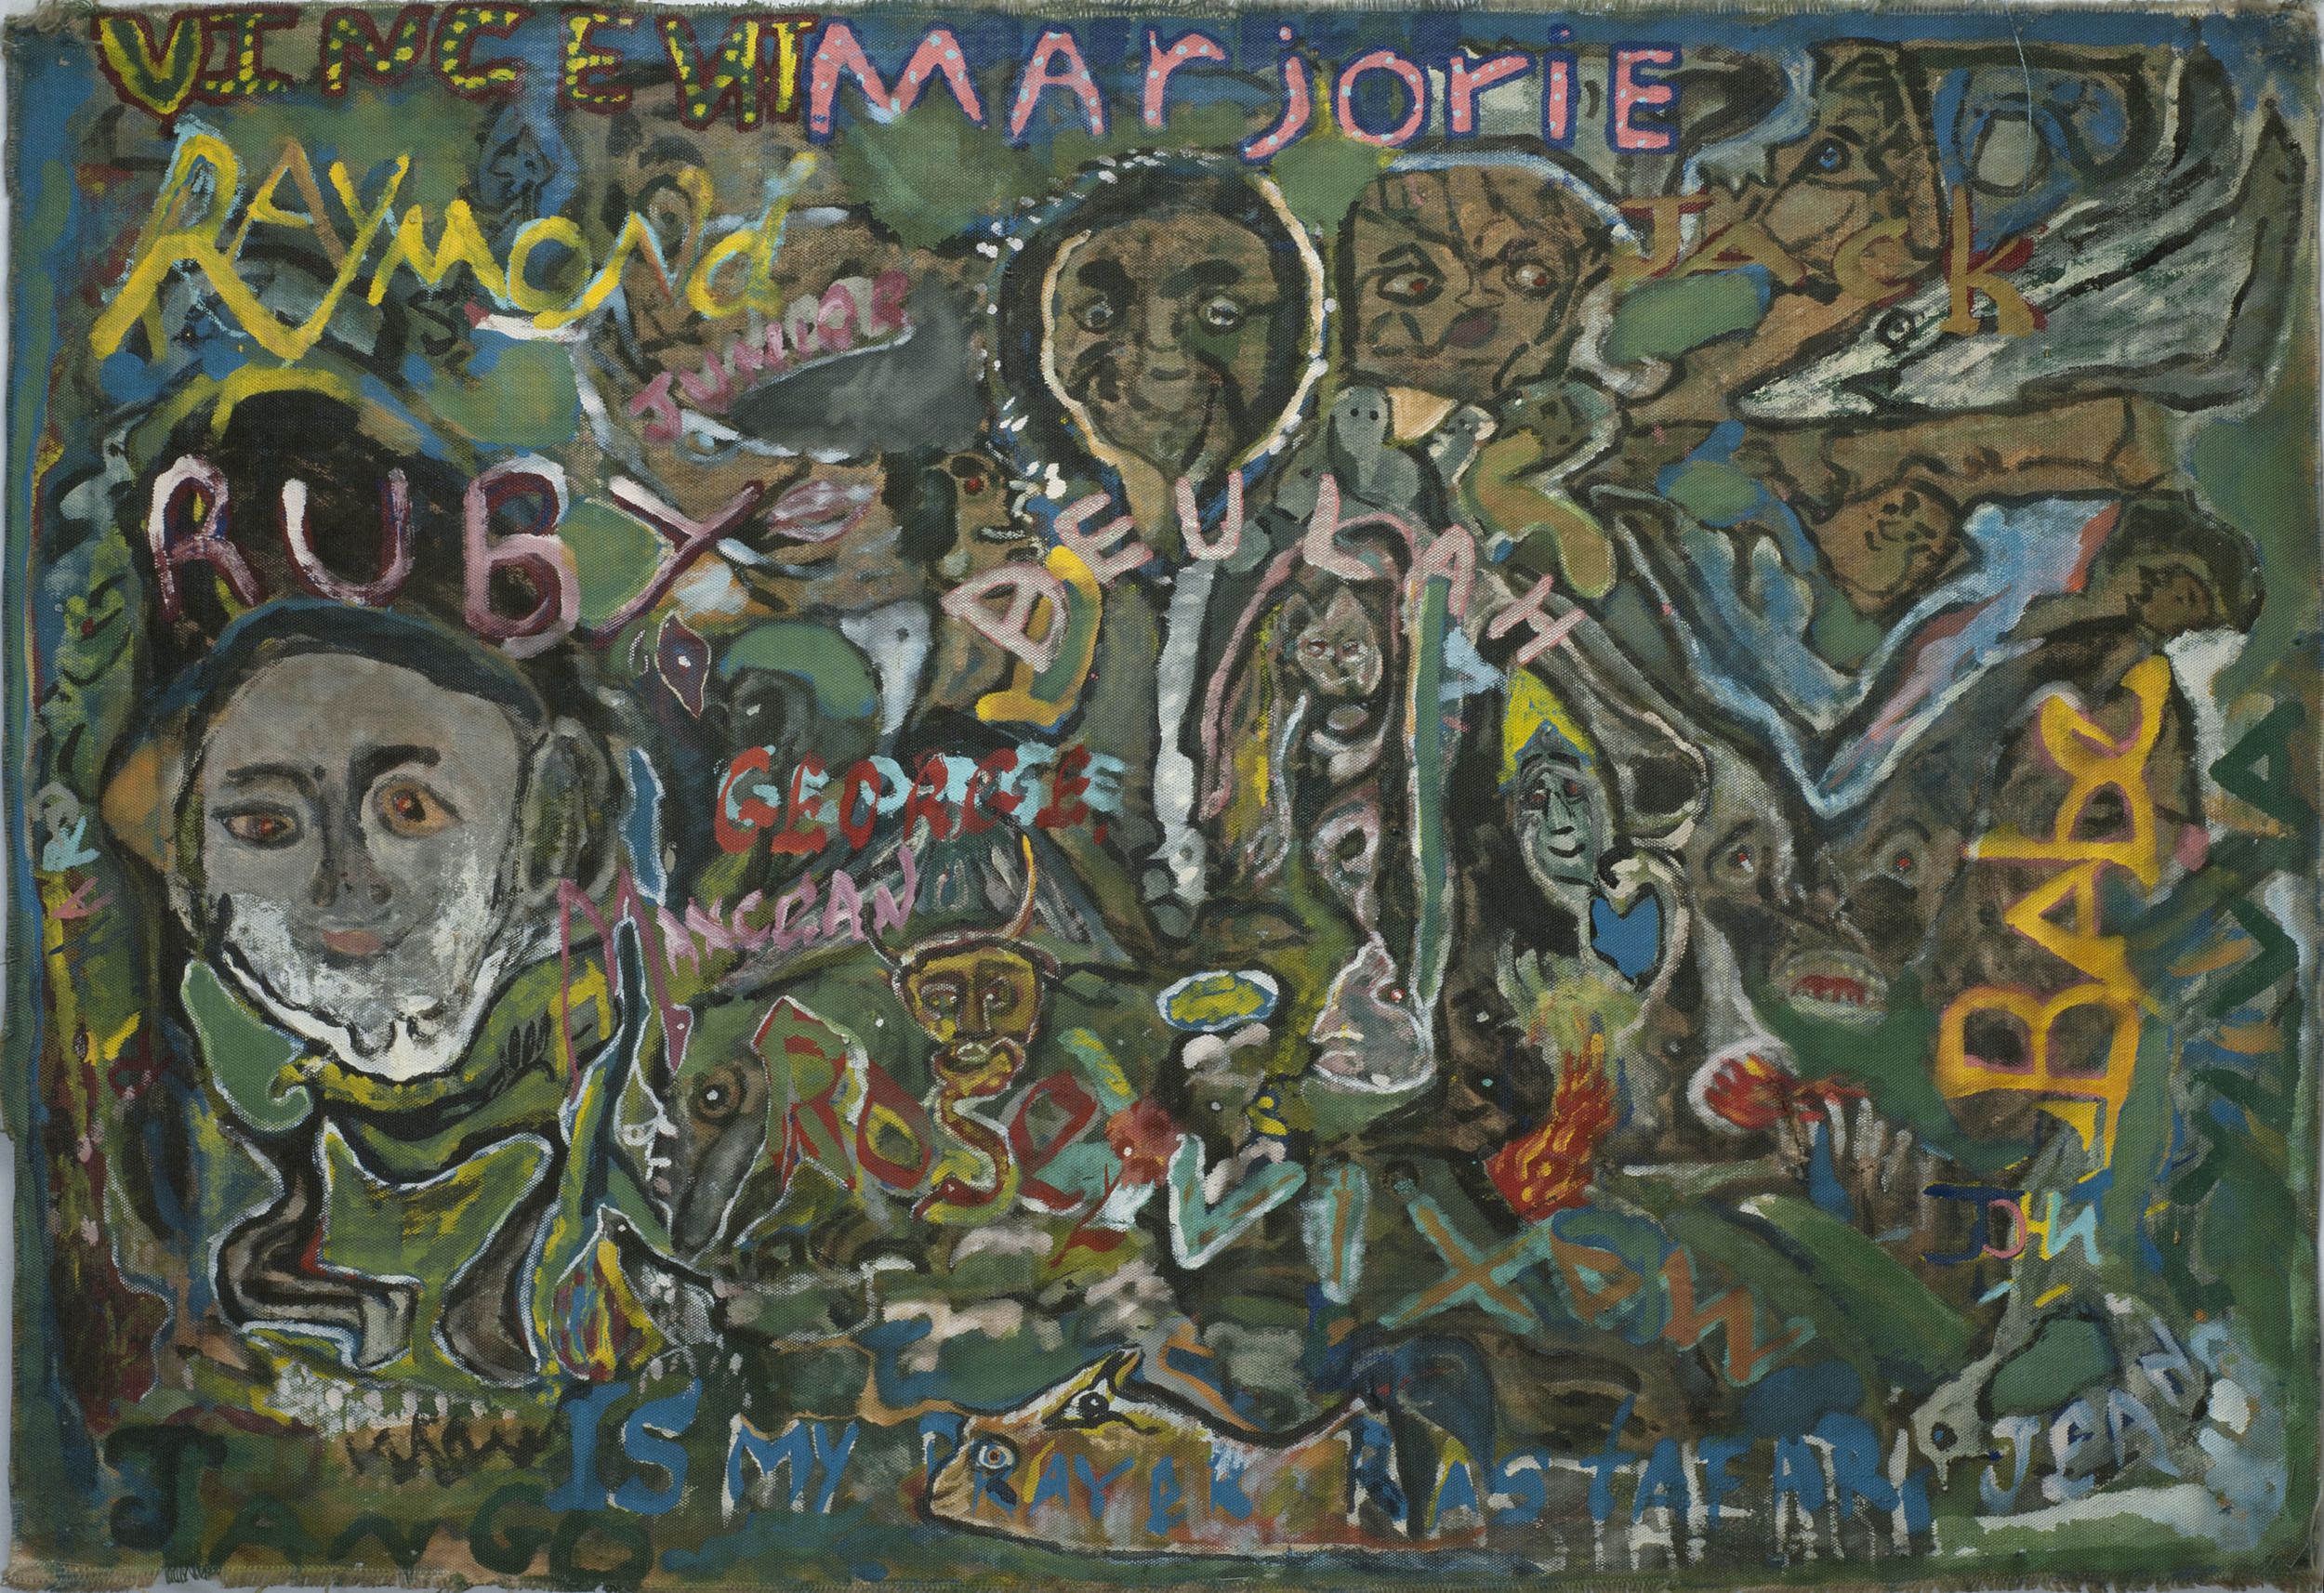 Leonard Daley    Marjorie  , 1994 Mixed media/canvas 26.5 x 38 inches  /  67.3 x 96.5 cm  /  LE  42